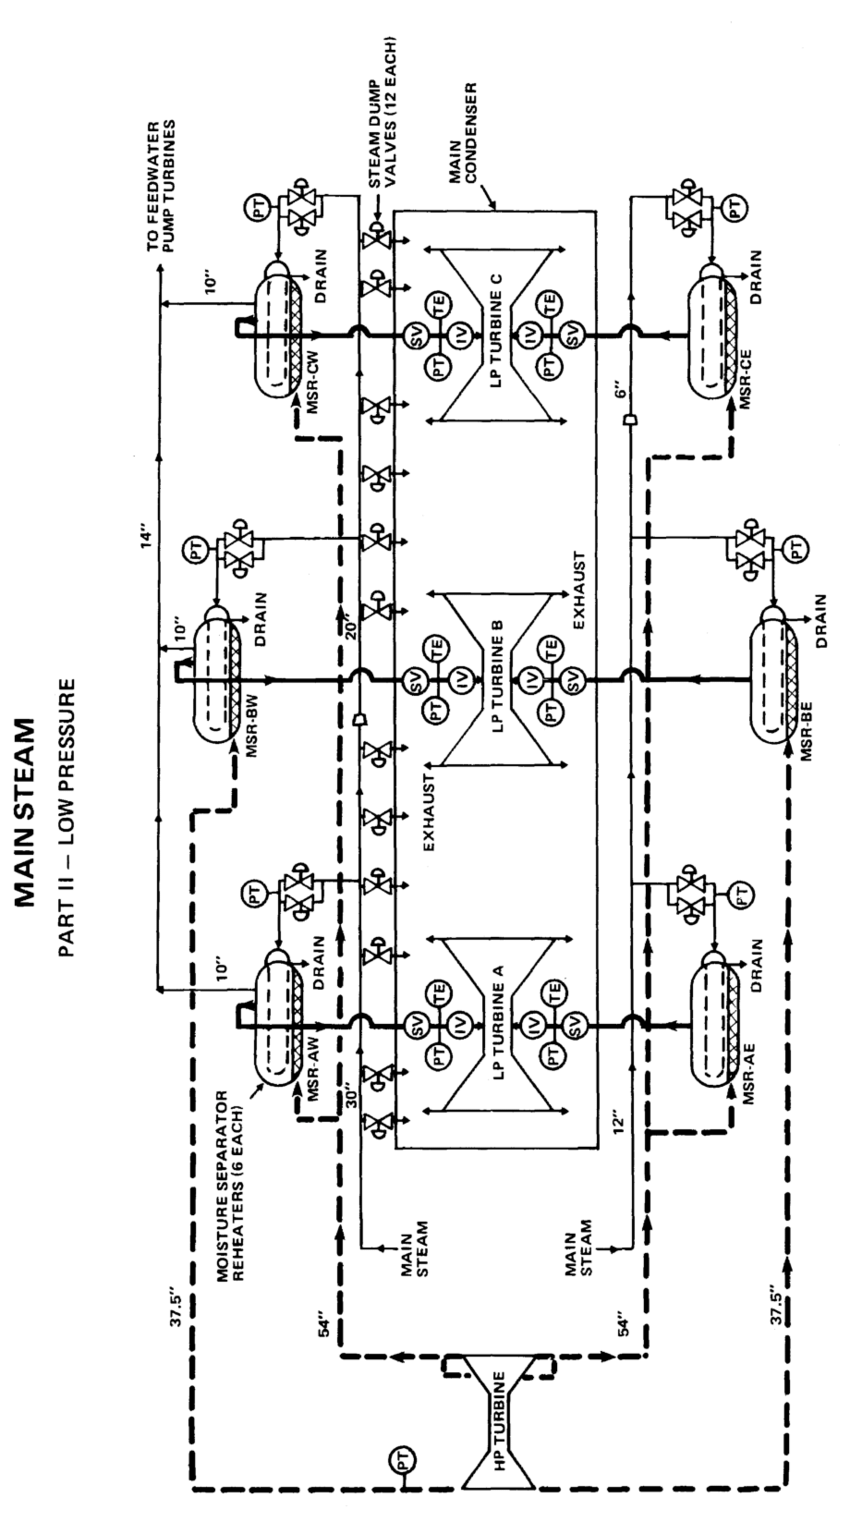 medium resolution of low pressure steam system for a typical 1000 mwe pressurized water nuclear power